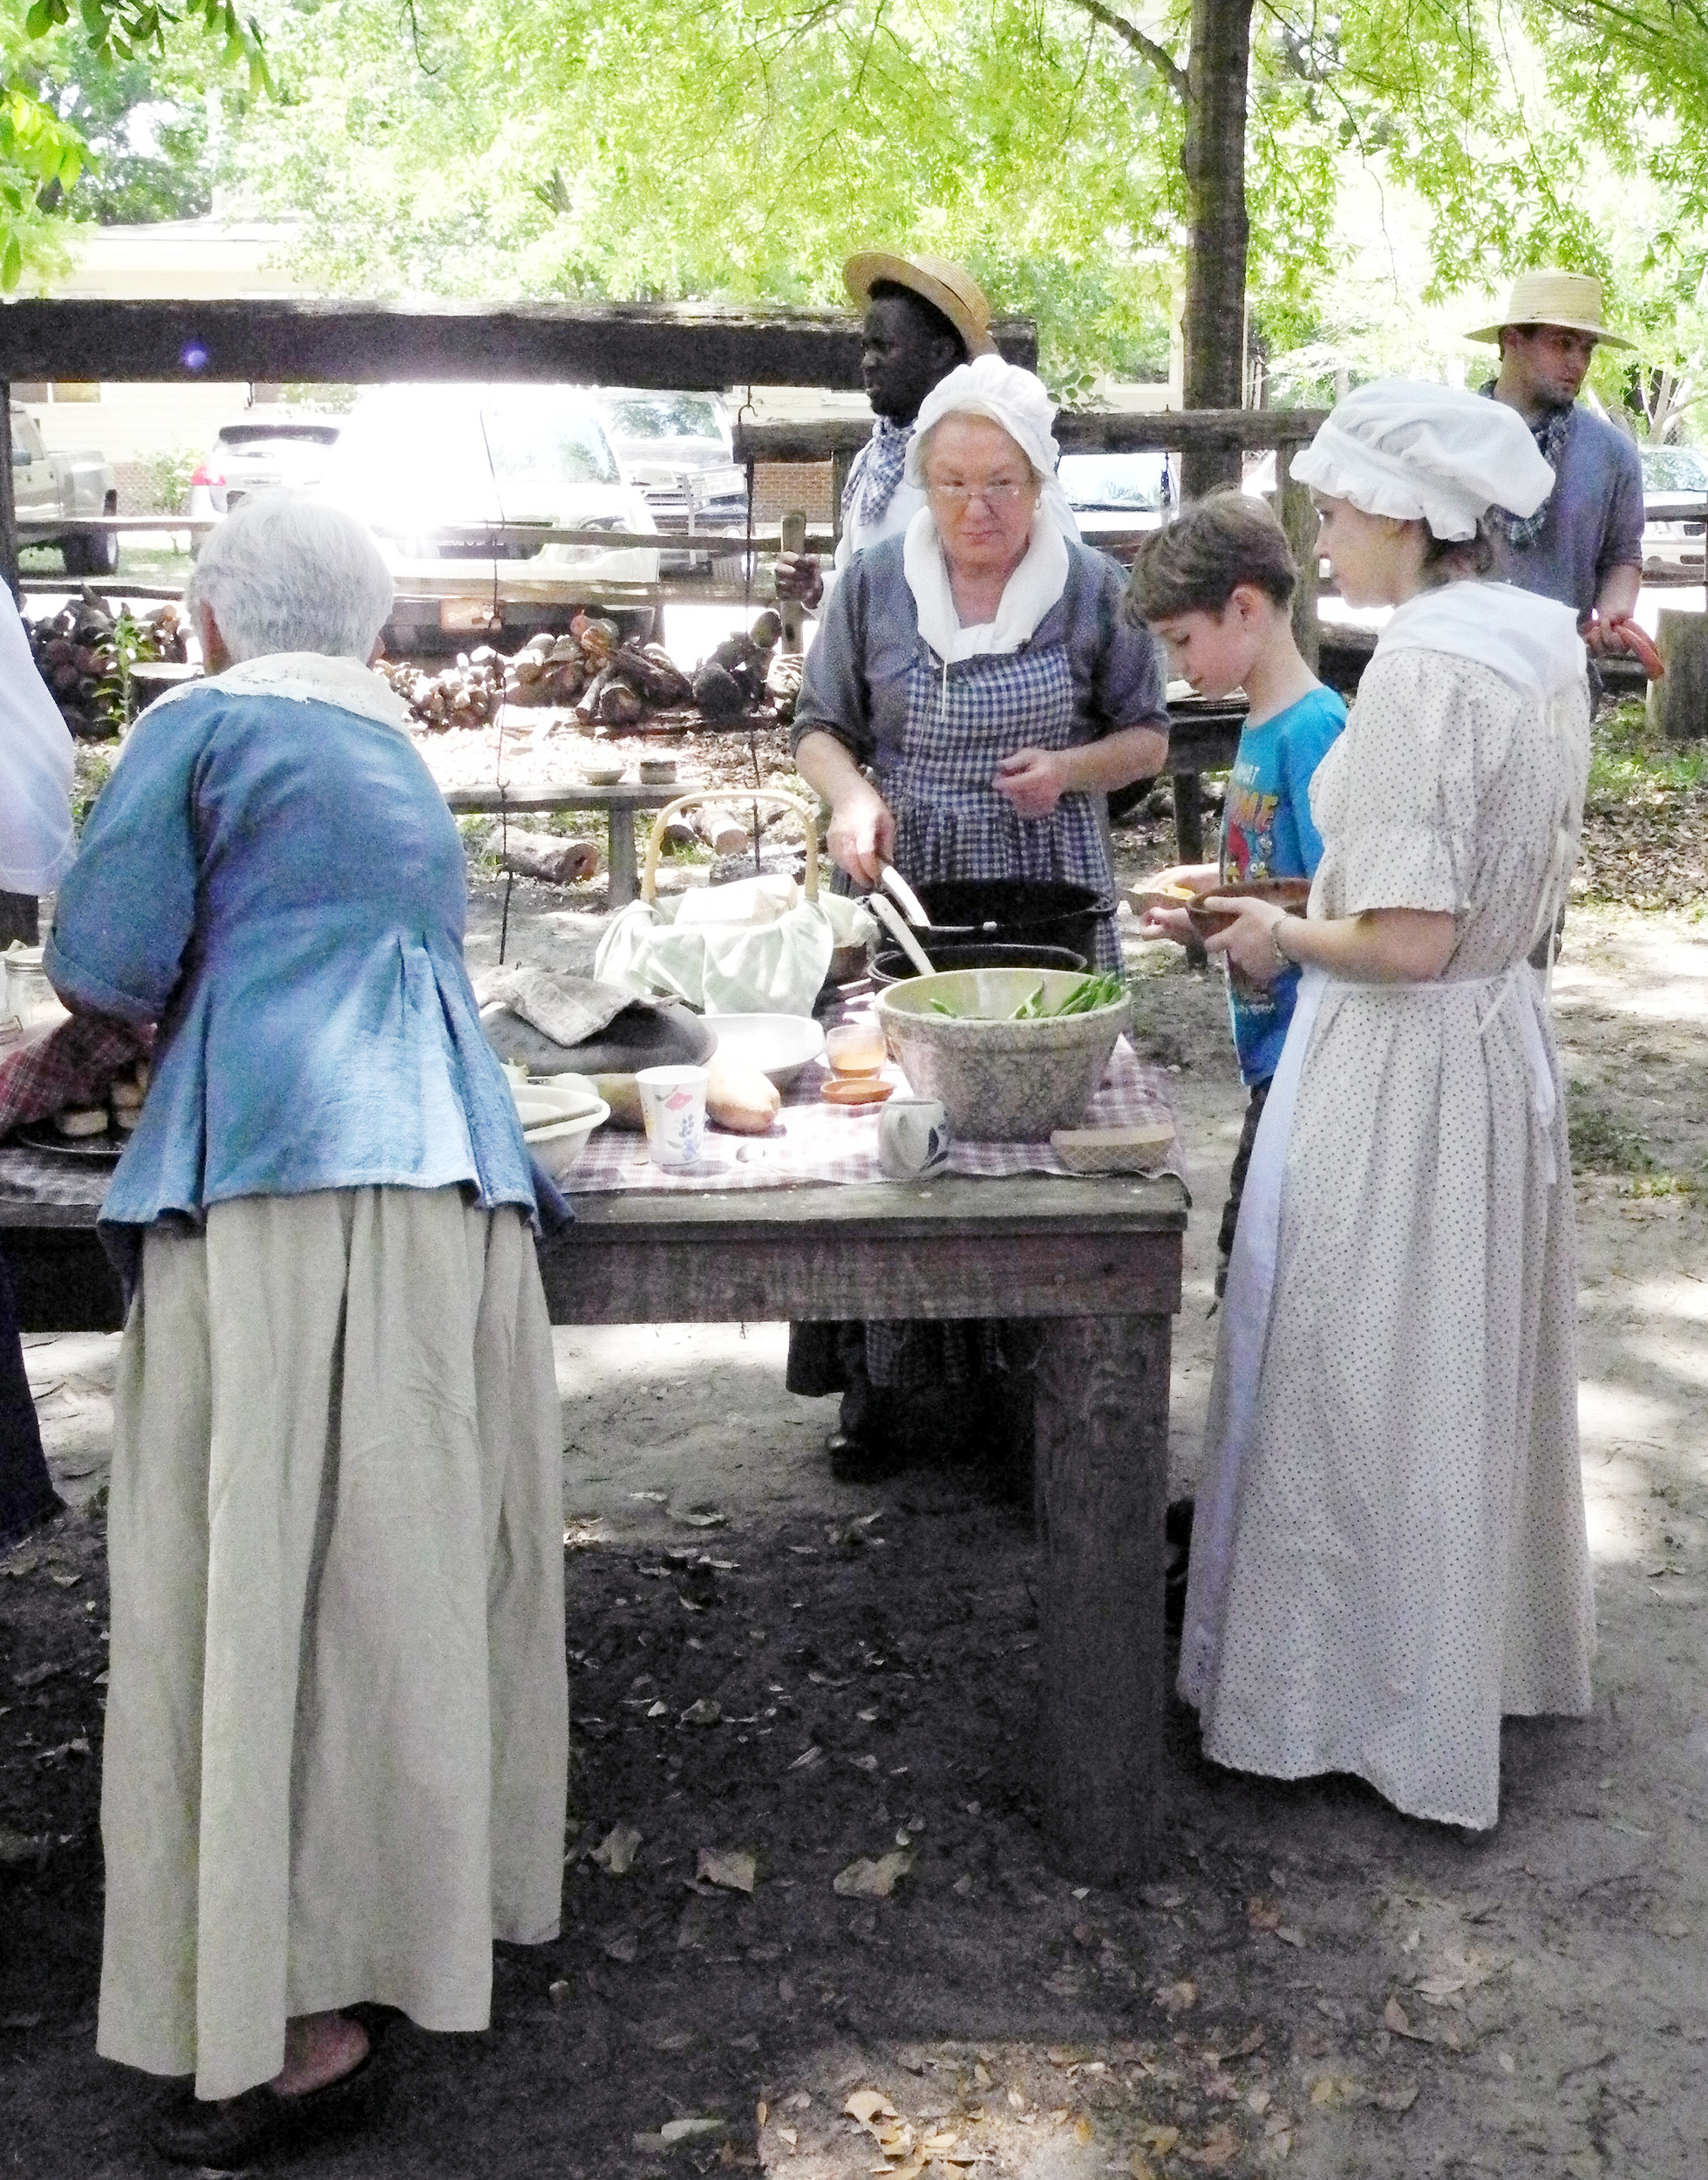 Deborah Watts, Sumter County Museum's Backcountry manager, serves up stew cooked over an open fire to guests at a Carolina Backcountry event. Museum staff and volunteers will be dressed in outfits like those worn by early Sumter-area settlers about the turn of the 19th century at the museum's Carolina Backcountry Harvest day program on Saturday.